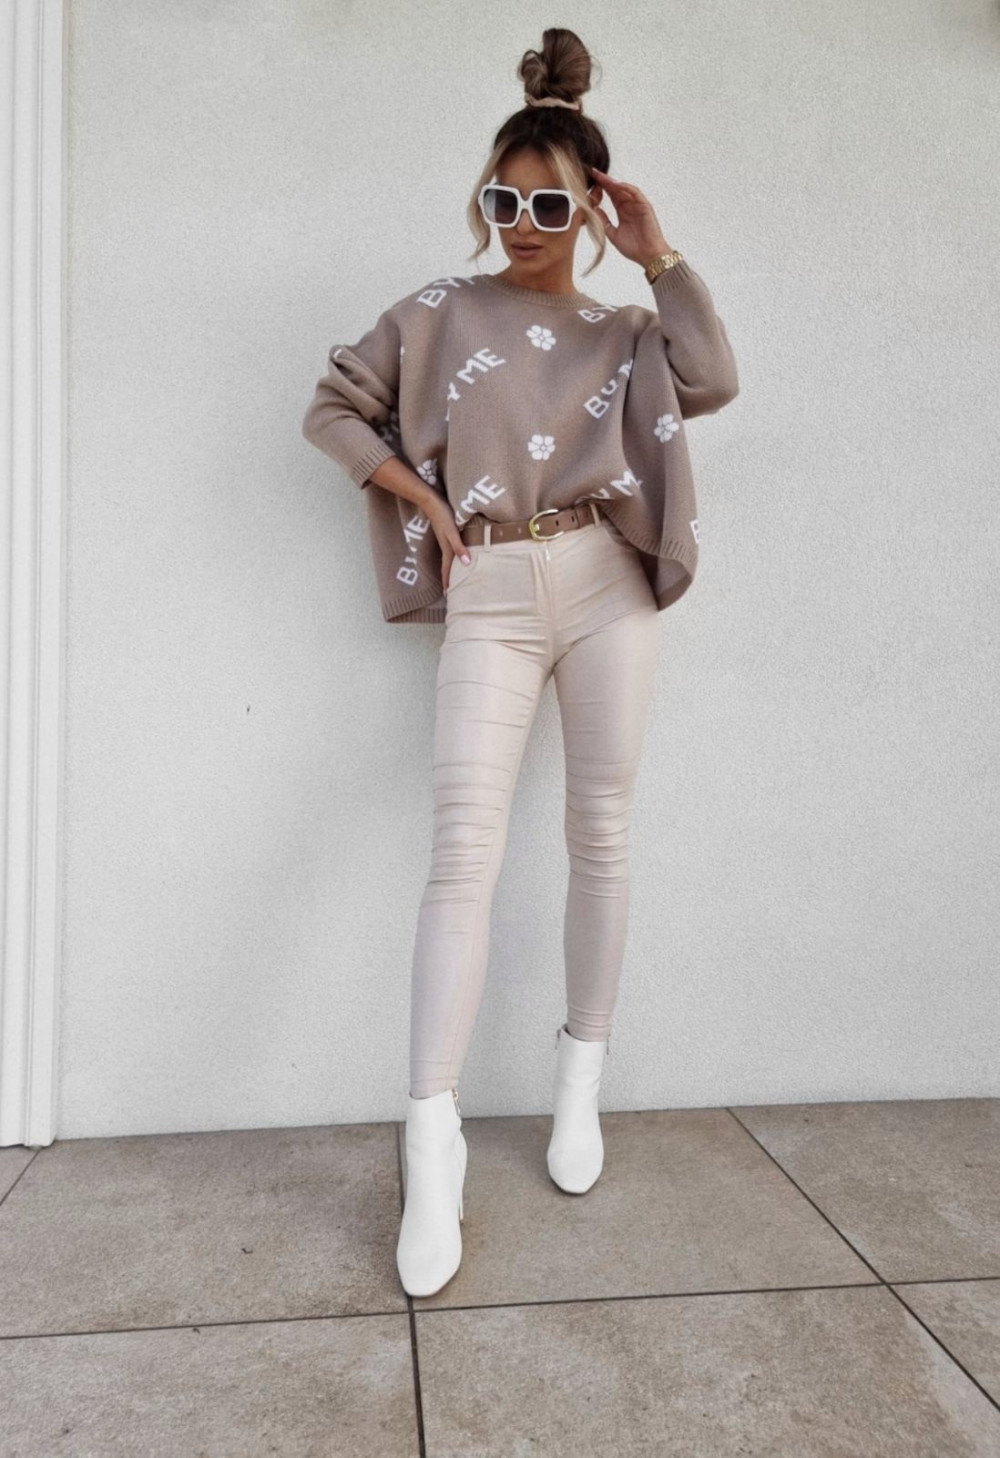 SWETER BM OVERSIZE BEŻOWY